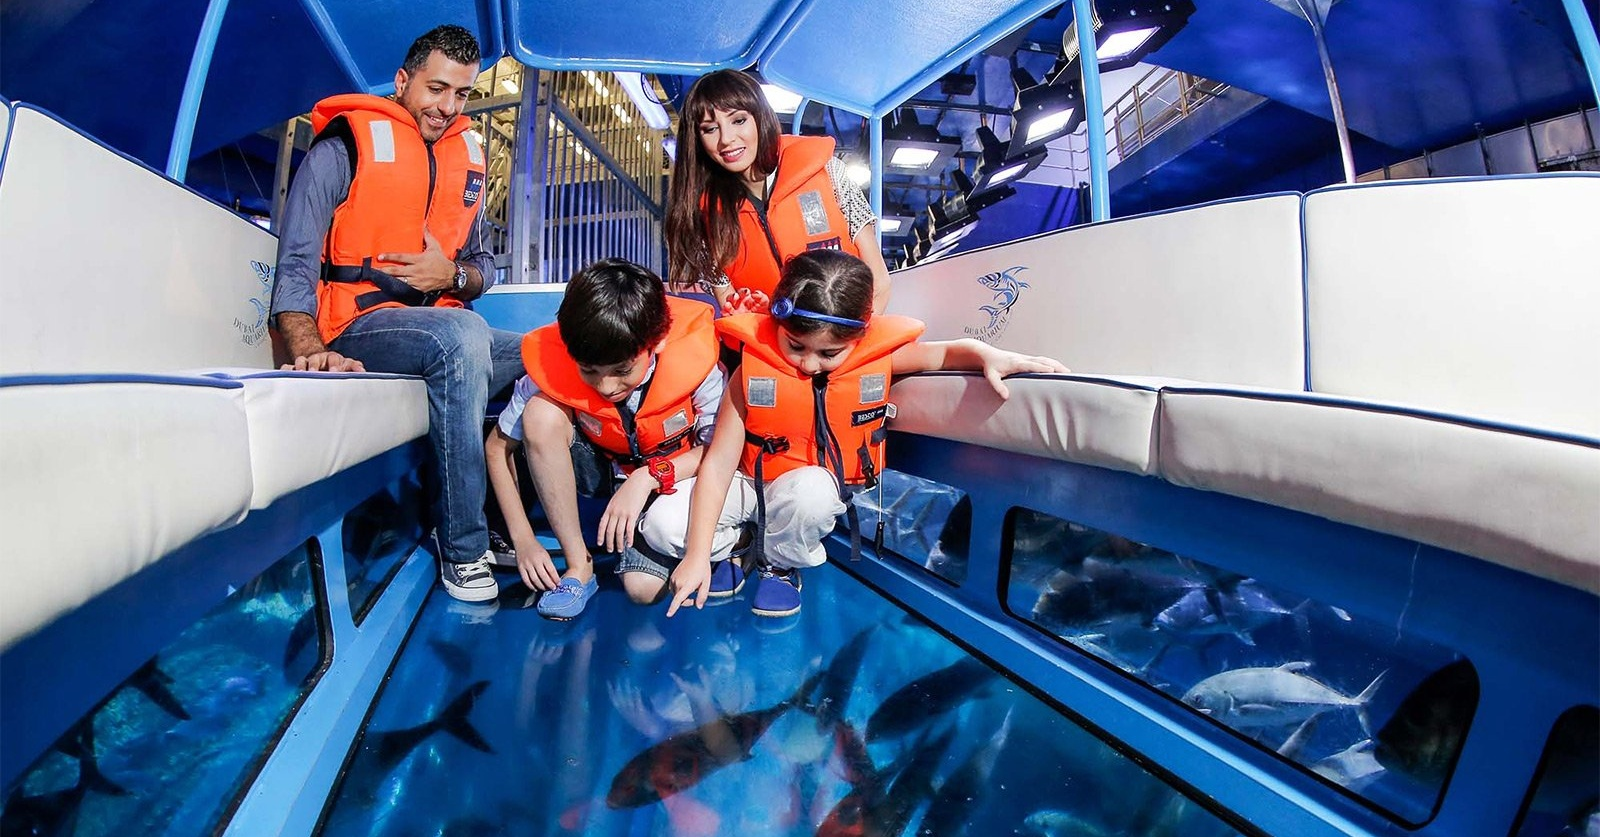 glass-bottom-boat-at-dubai-aquarium-dubai-mall-Image-via-oddviser Cropped